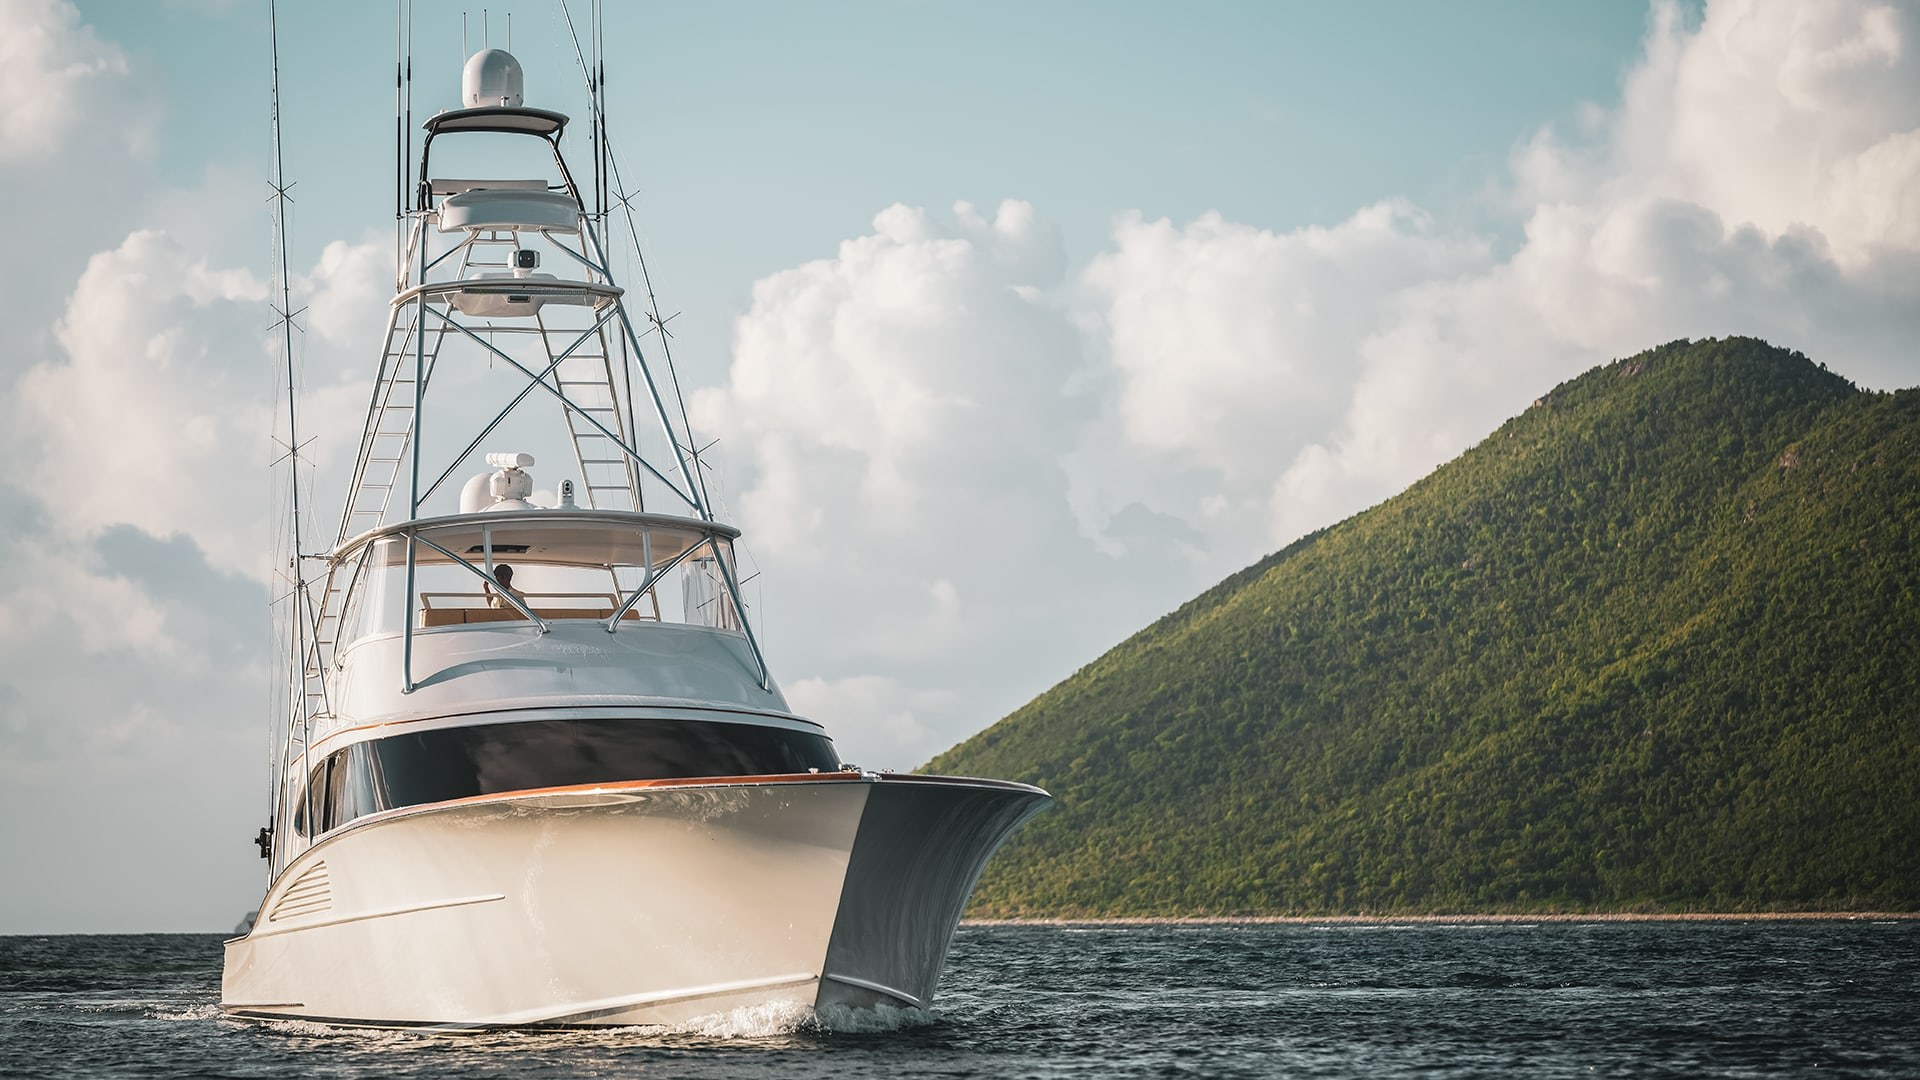 Sportfishing Yacht In The Virgin Islands